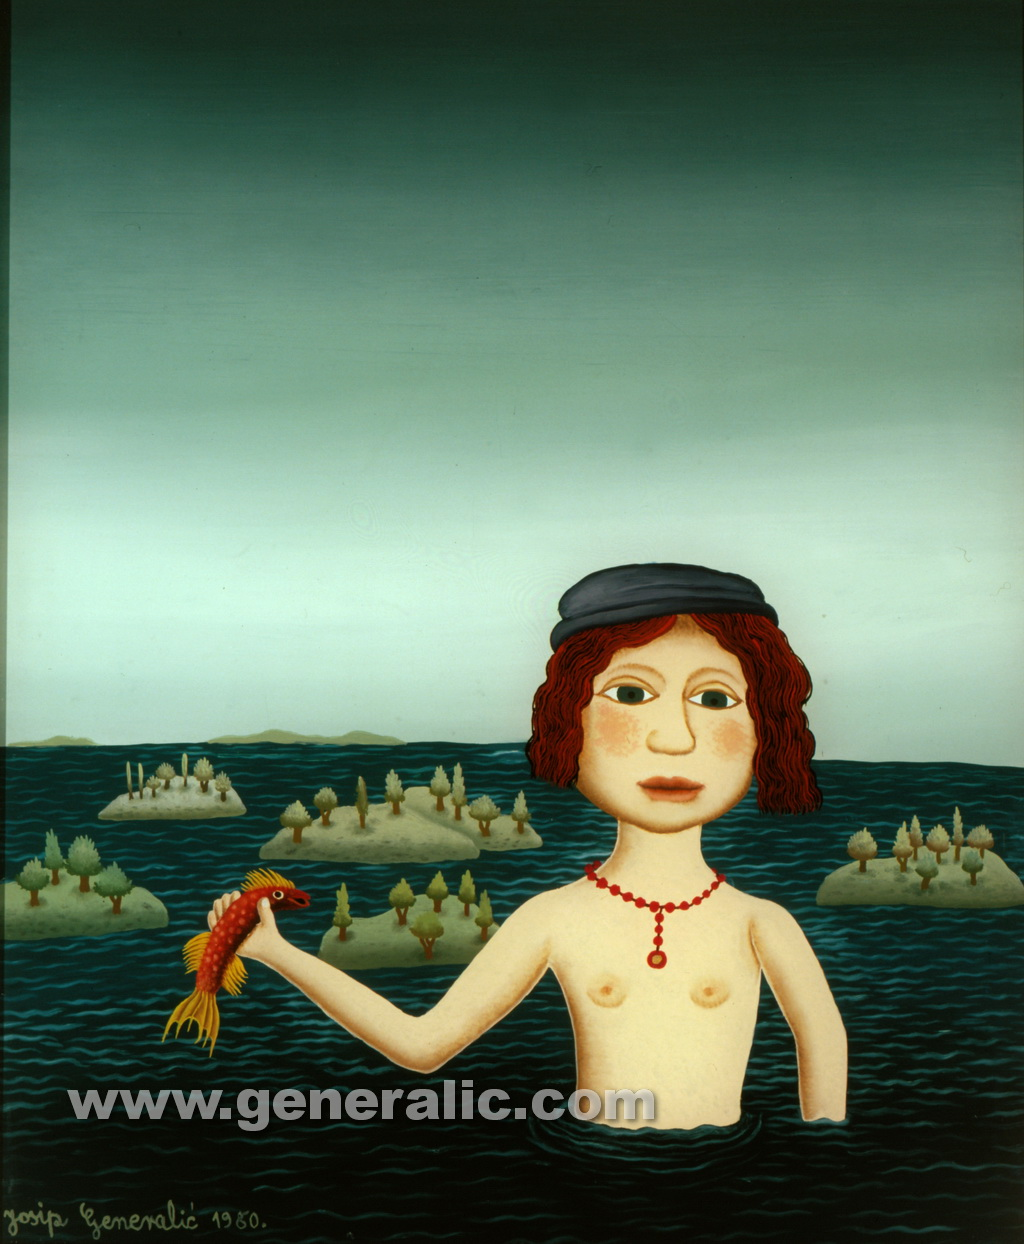 Josip Generalic, 1980, Girl with a fish, oil on glass, 39x32 cm